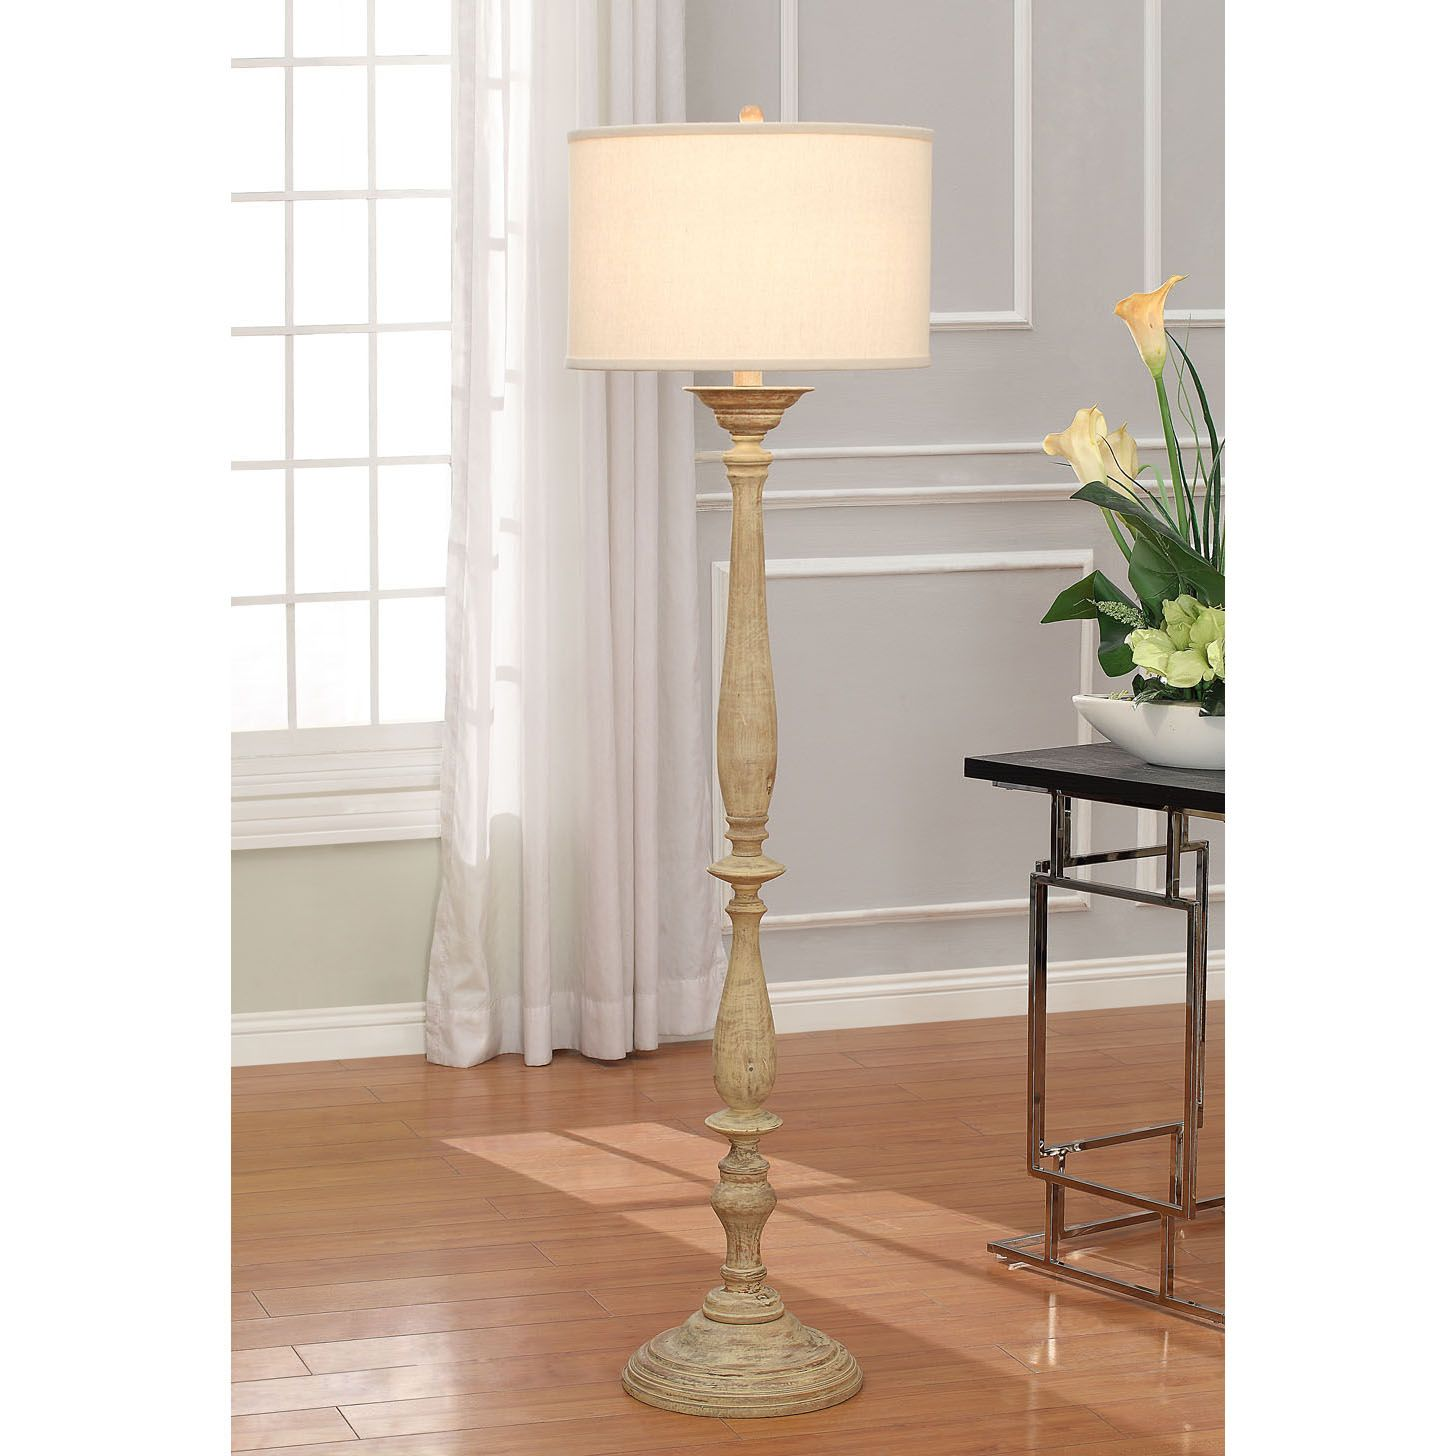 Overstock Com Online Shopping Bedding Furniture Electronics Jewelry Clothing More Floor Lamp Lamp Floor Lamps Living Room